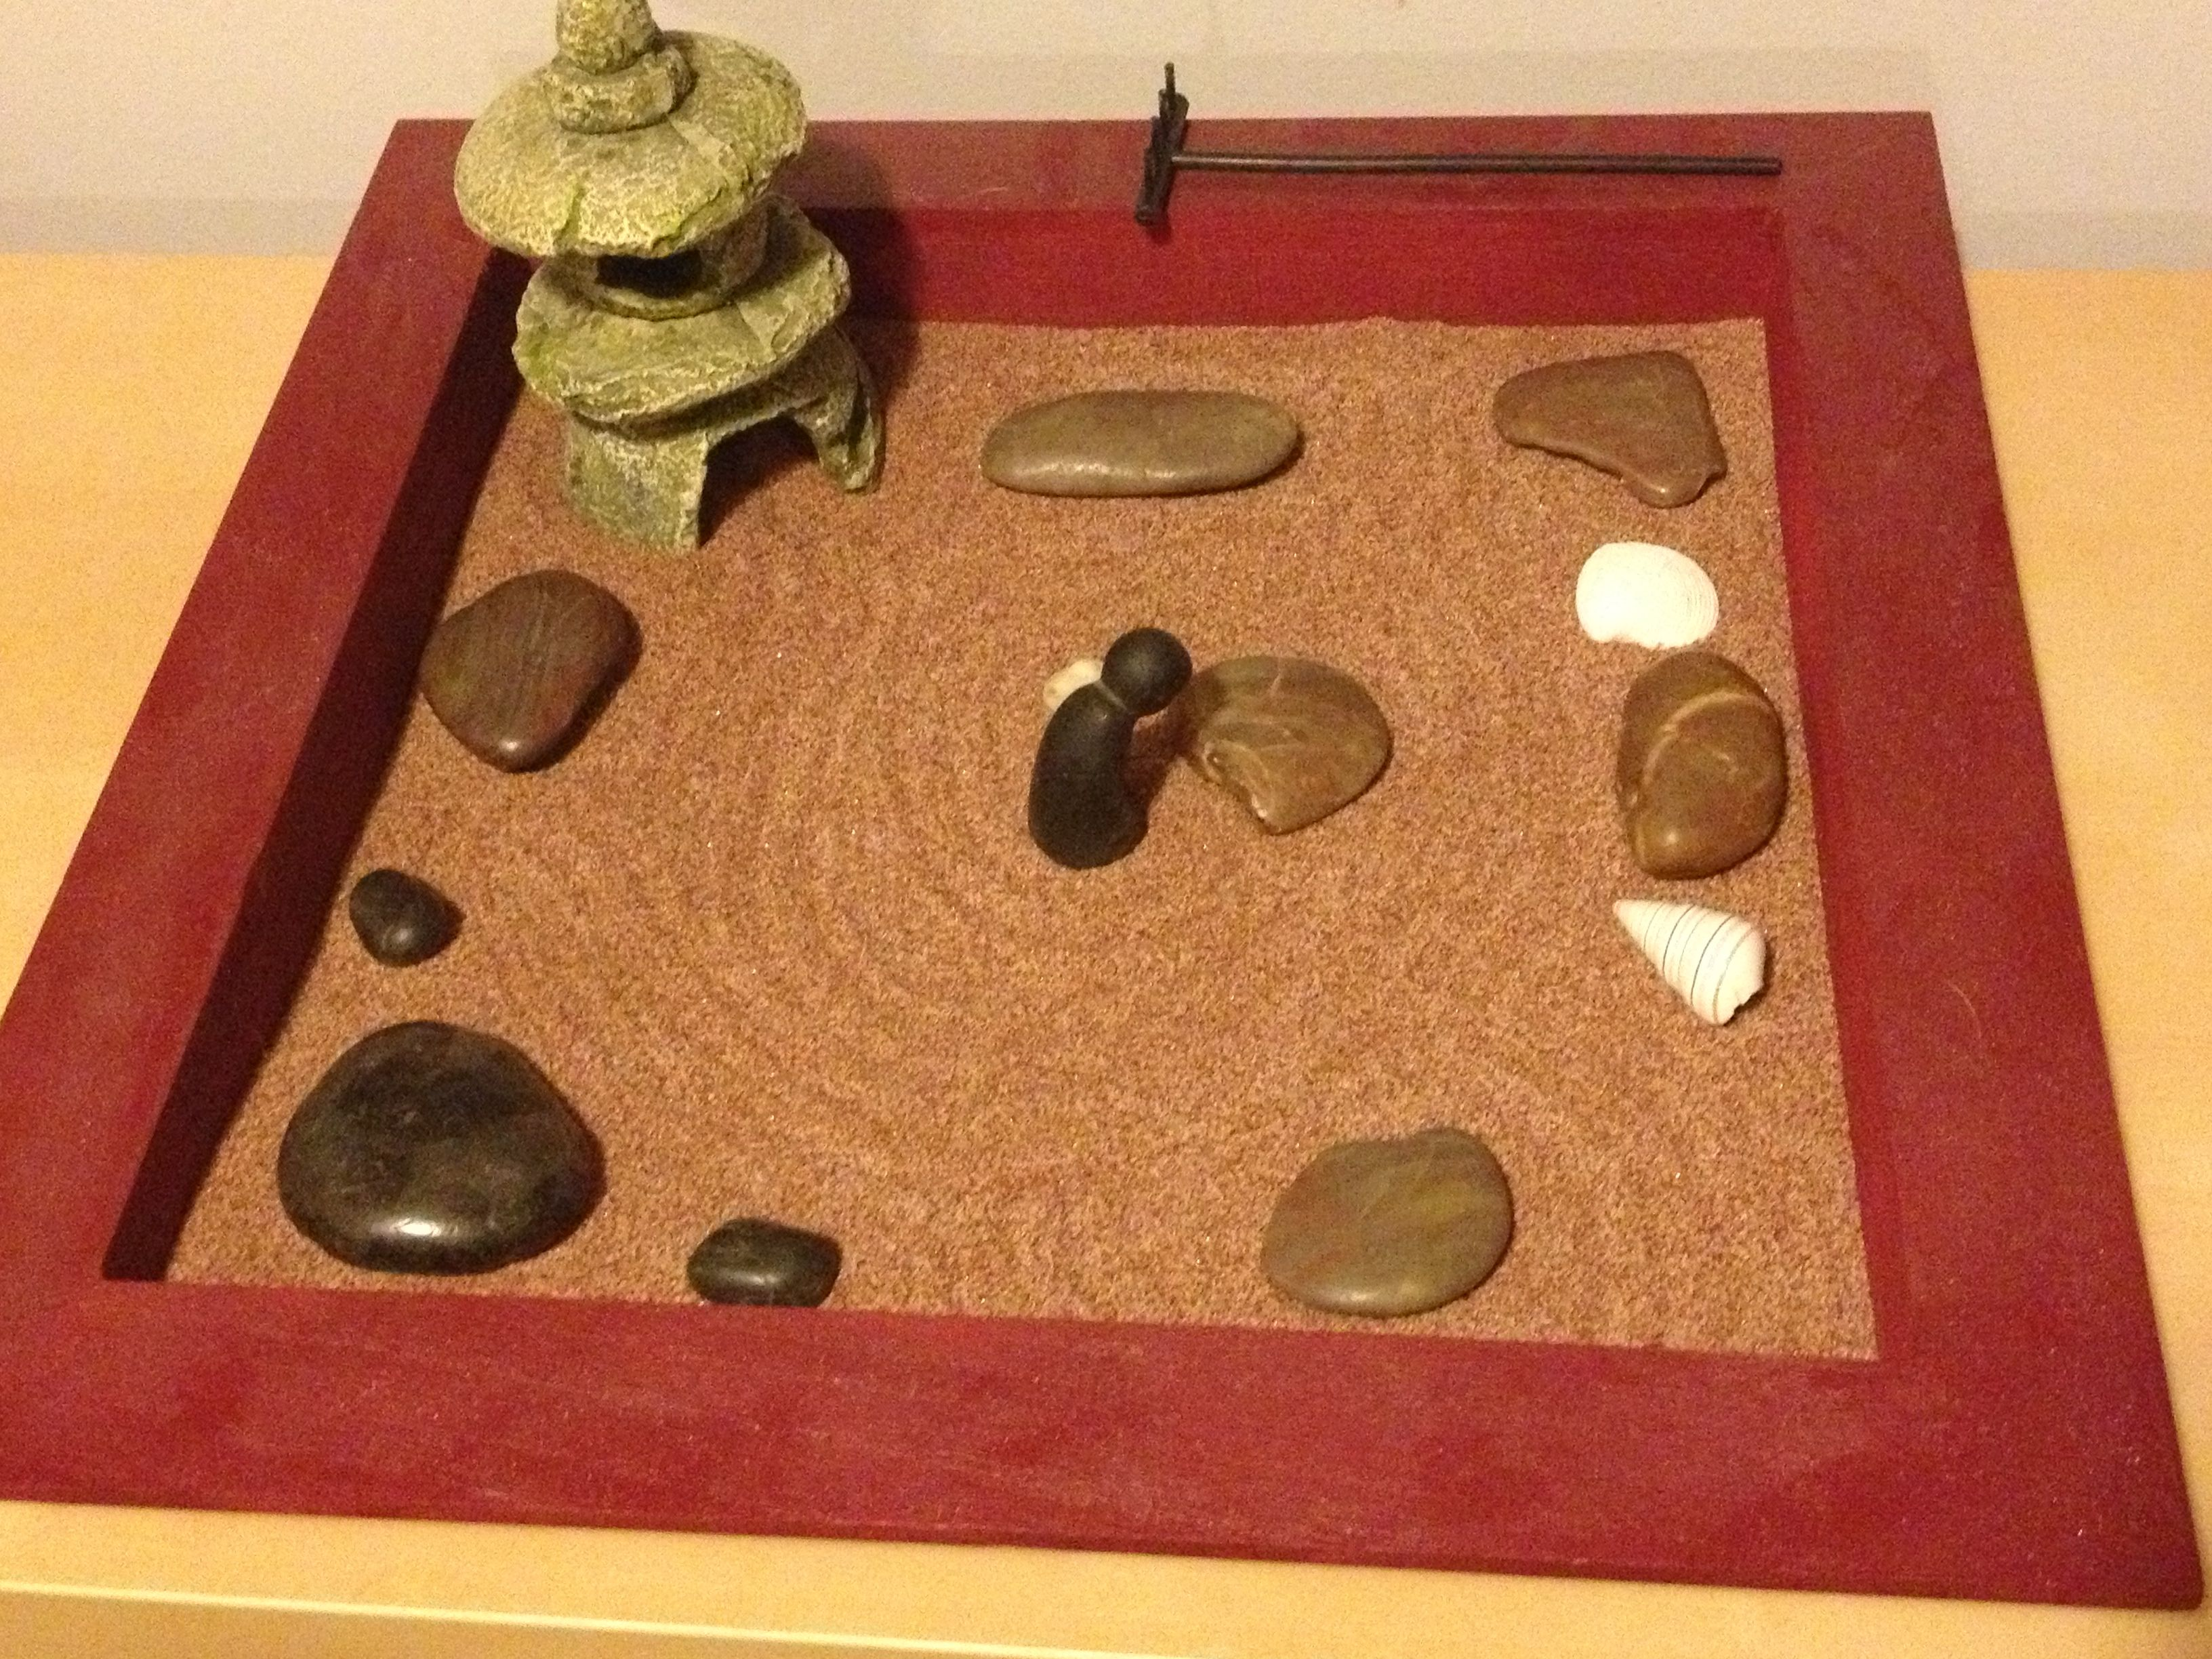 Mini Zen Garden Supplies From Michael S Shadow Box Spray Paint Sand Rocks Pagoda From Pet Store Aquarium Zen Garden Zen Garden Diy Mini Zen Garden